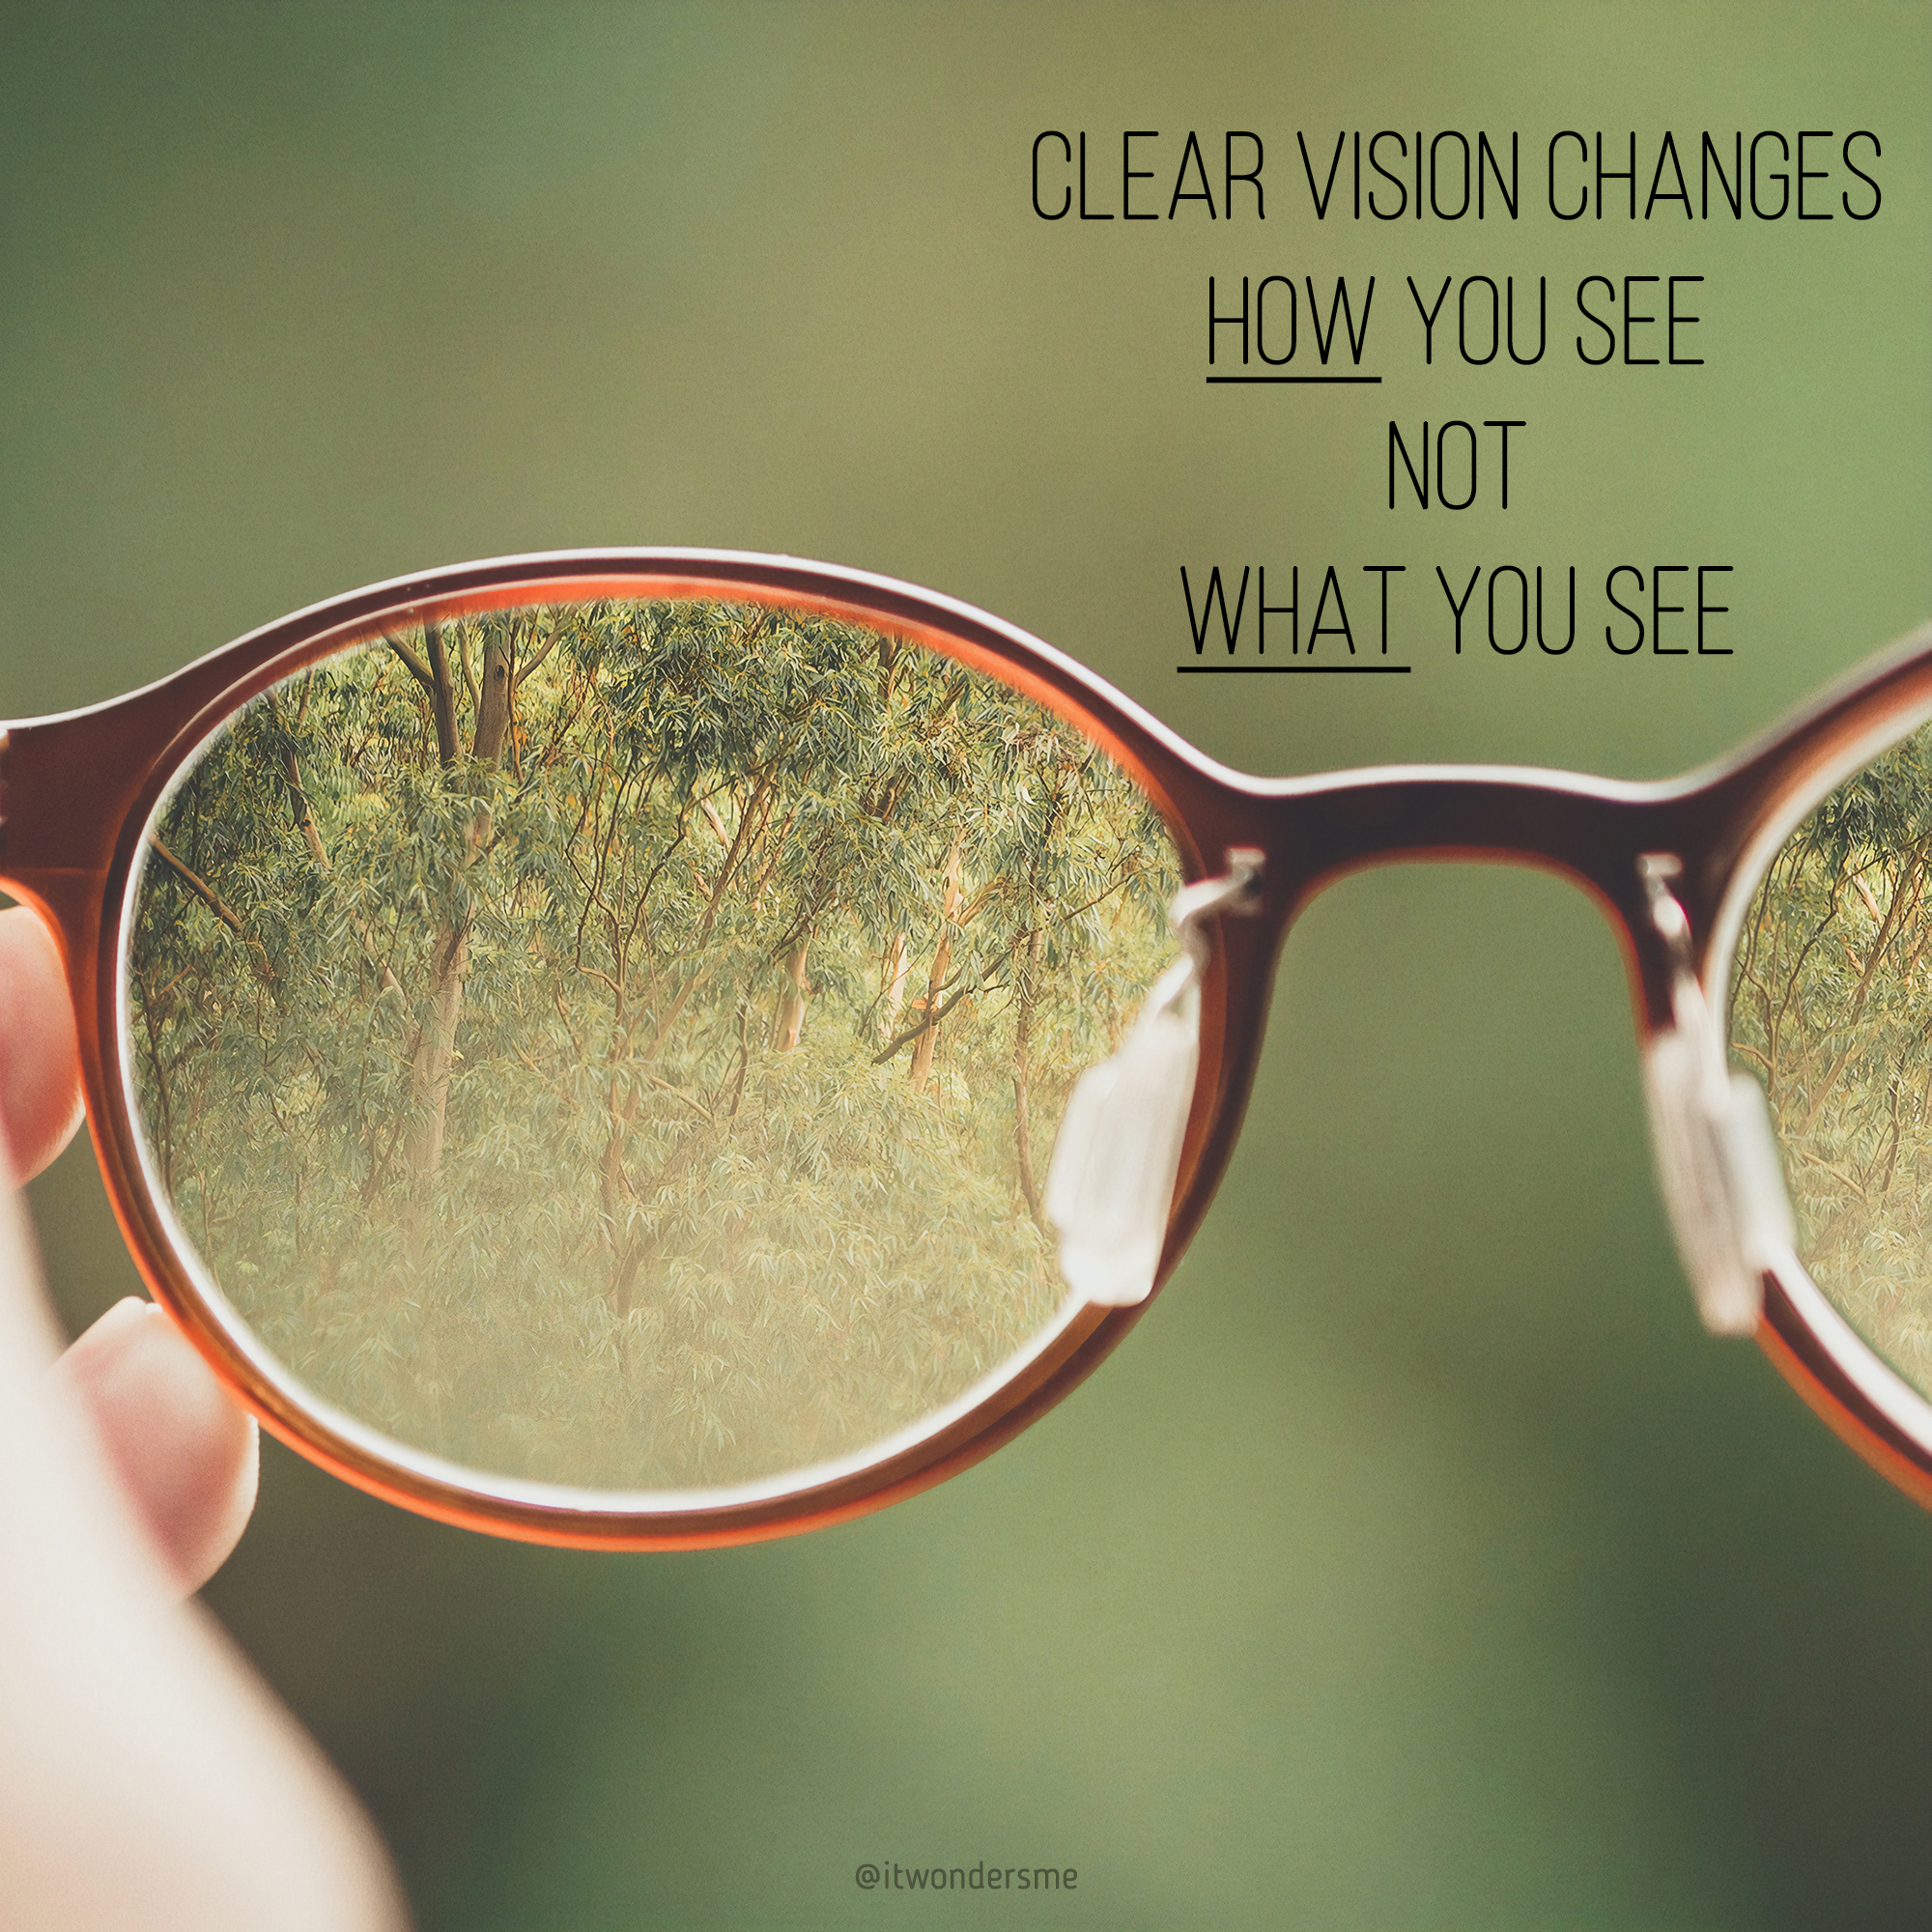 Clear vision changes how you see, not what you see